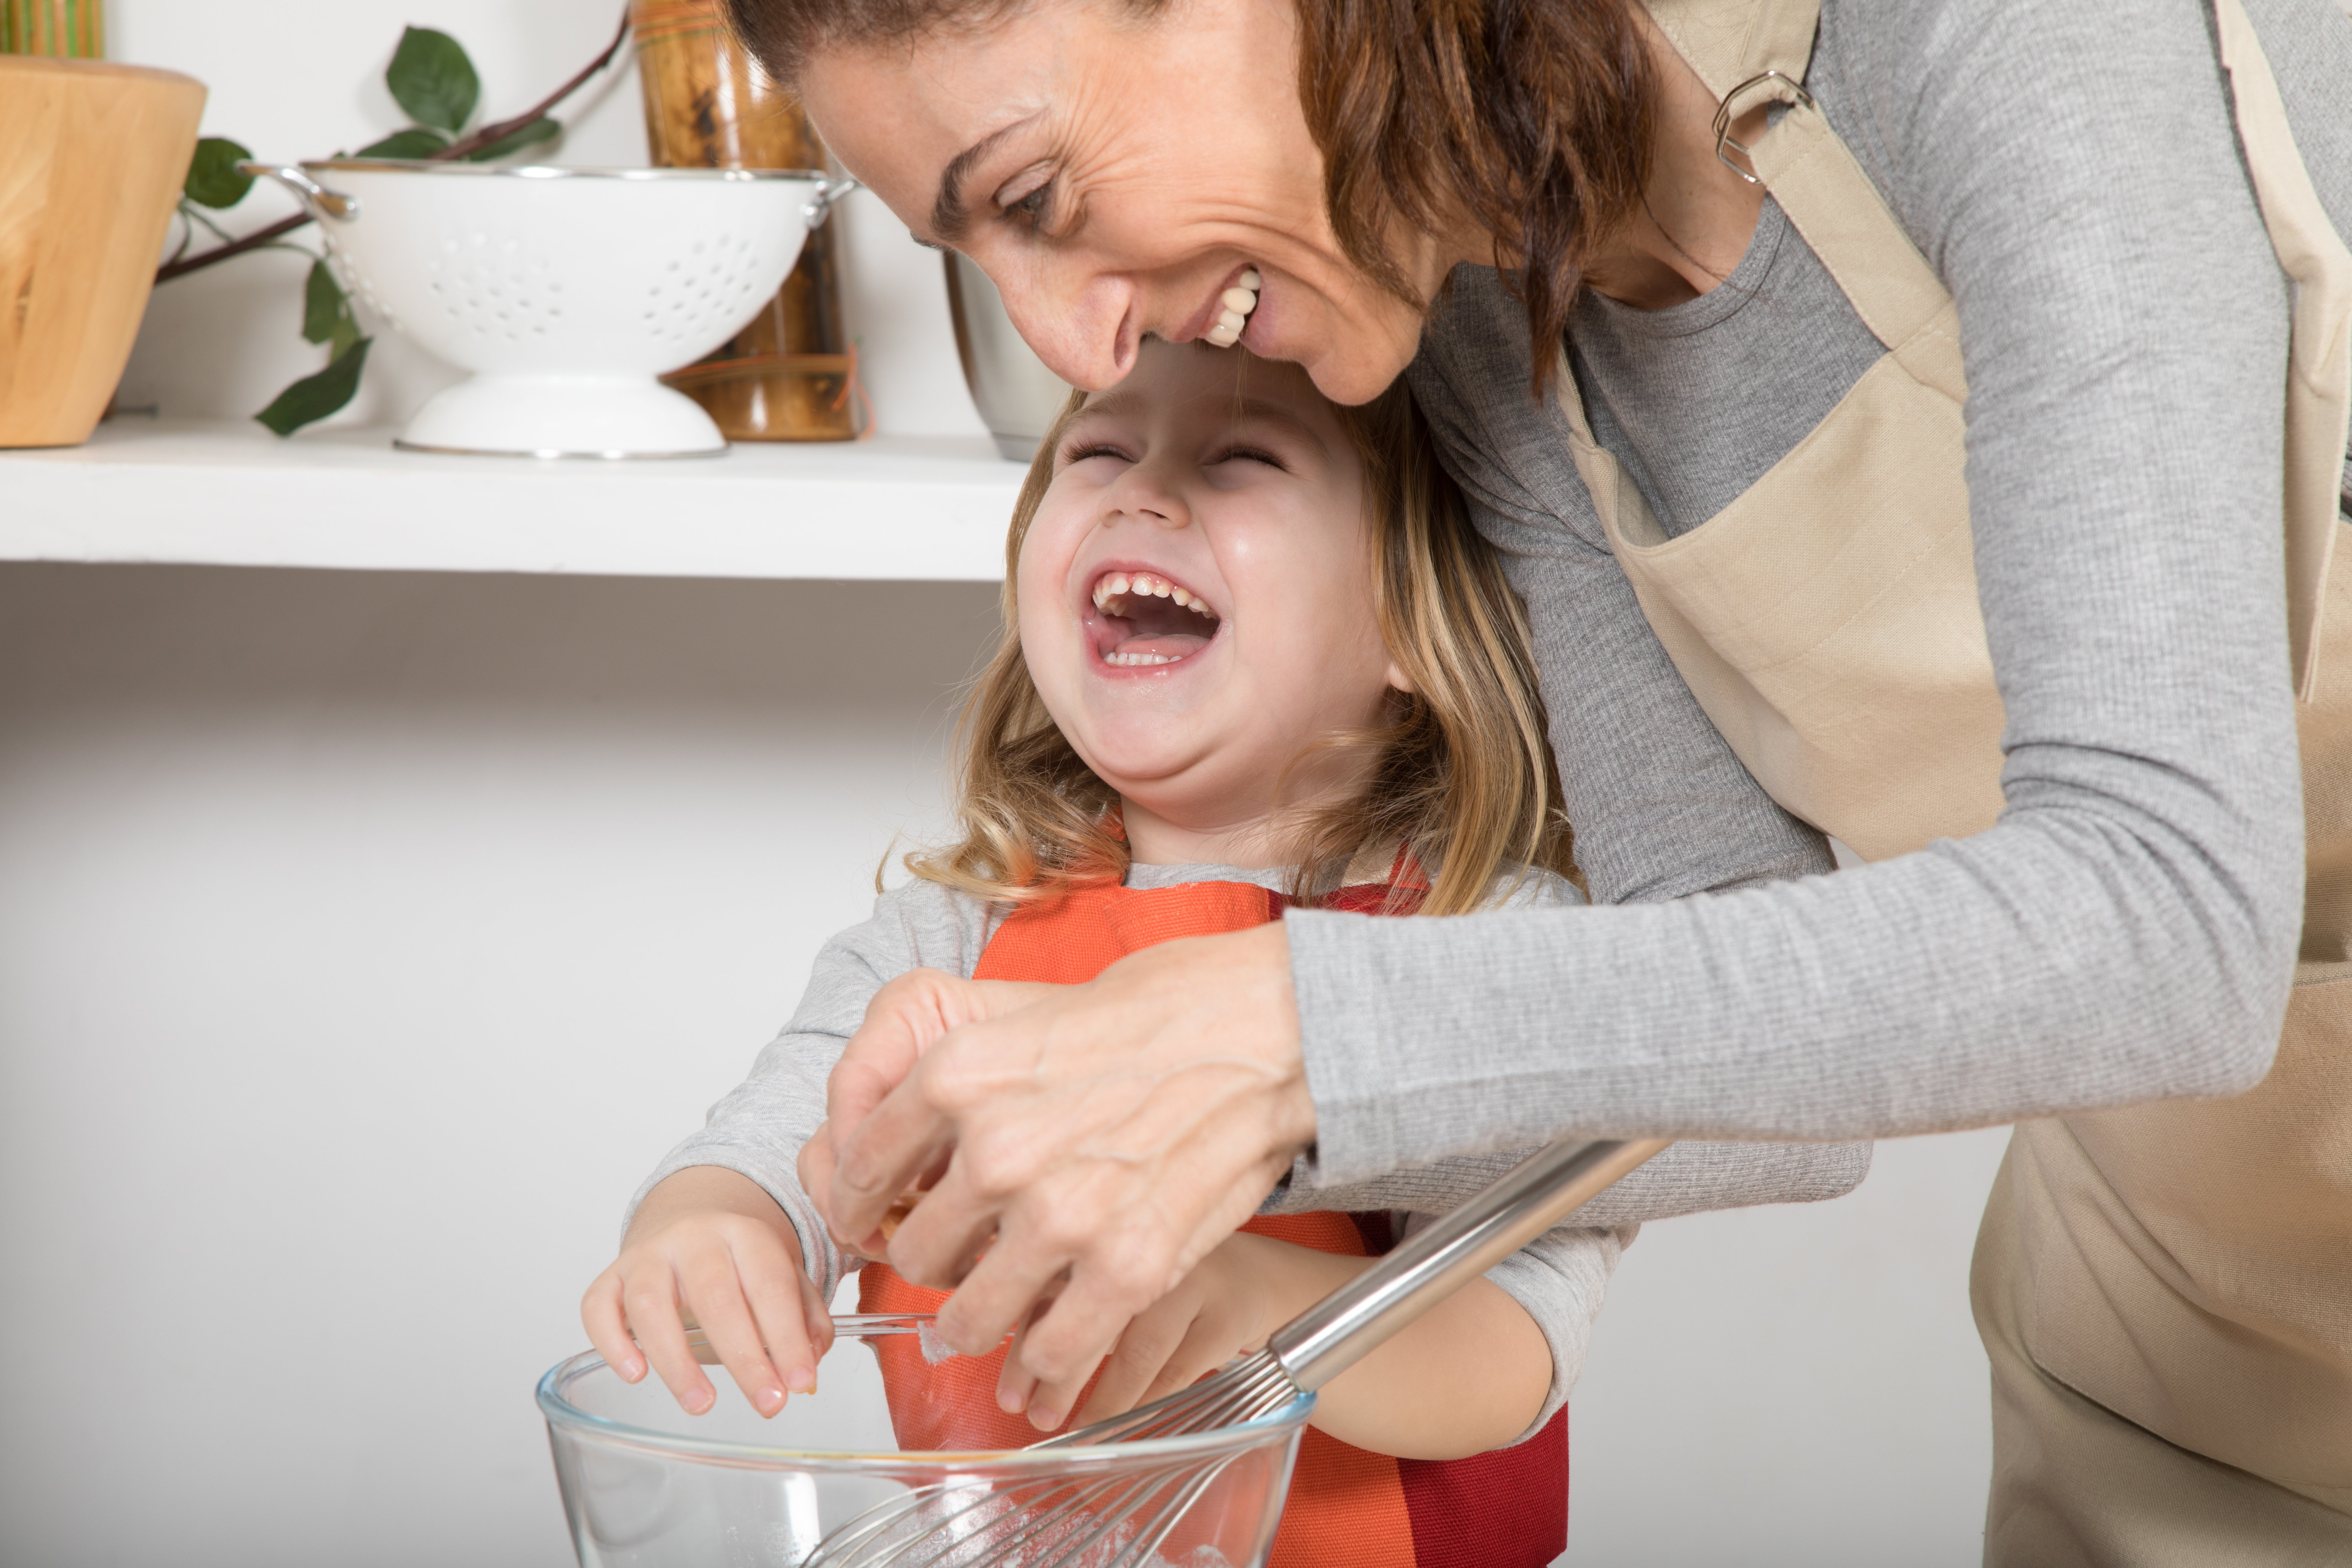 funny three years old child and woman mother with beige apron in teamwork cooking a sponge cake at kitchen home laughing happy together